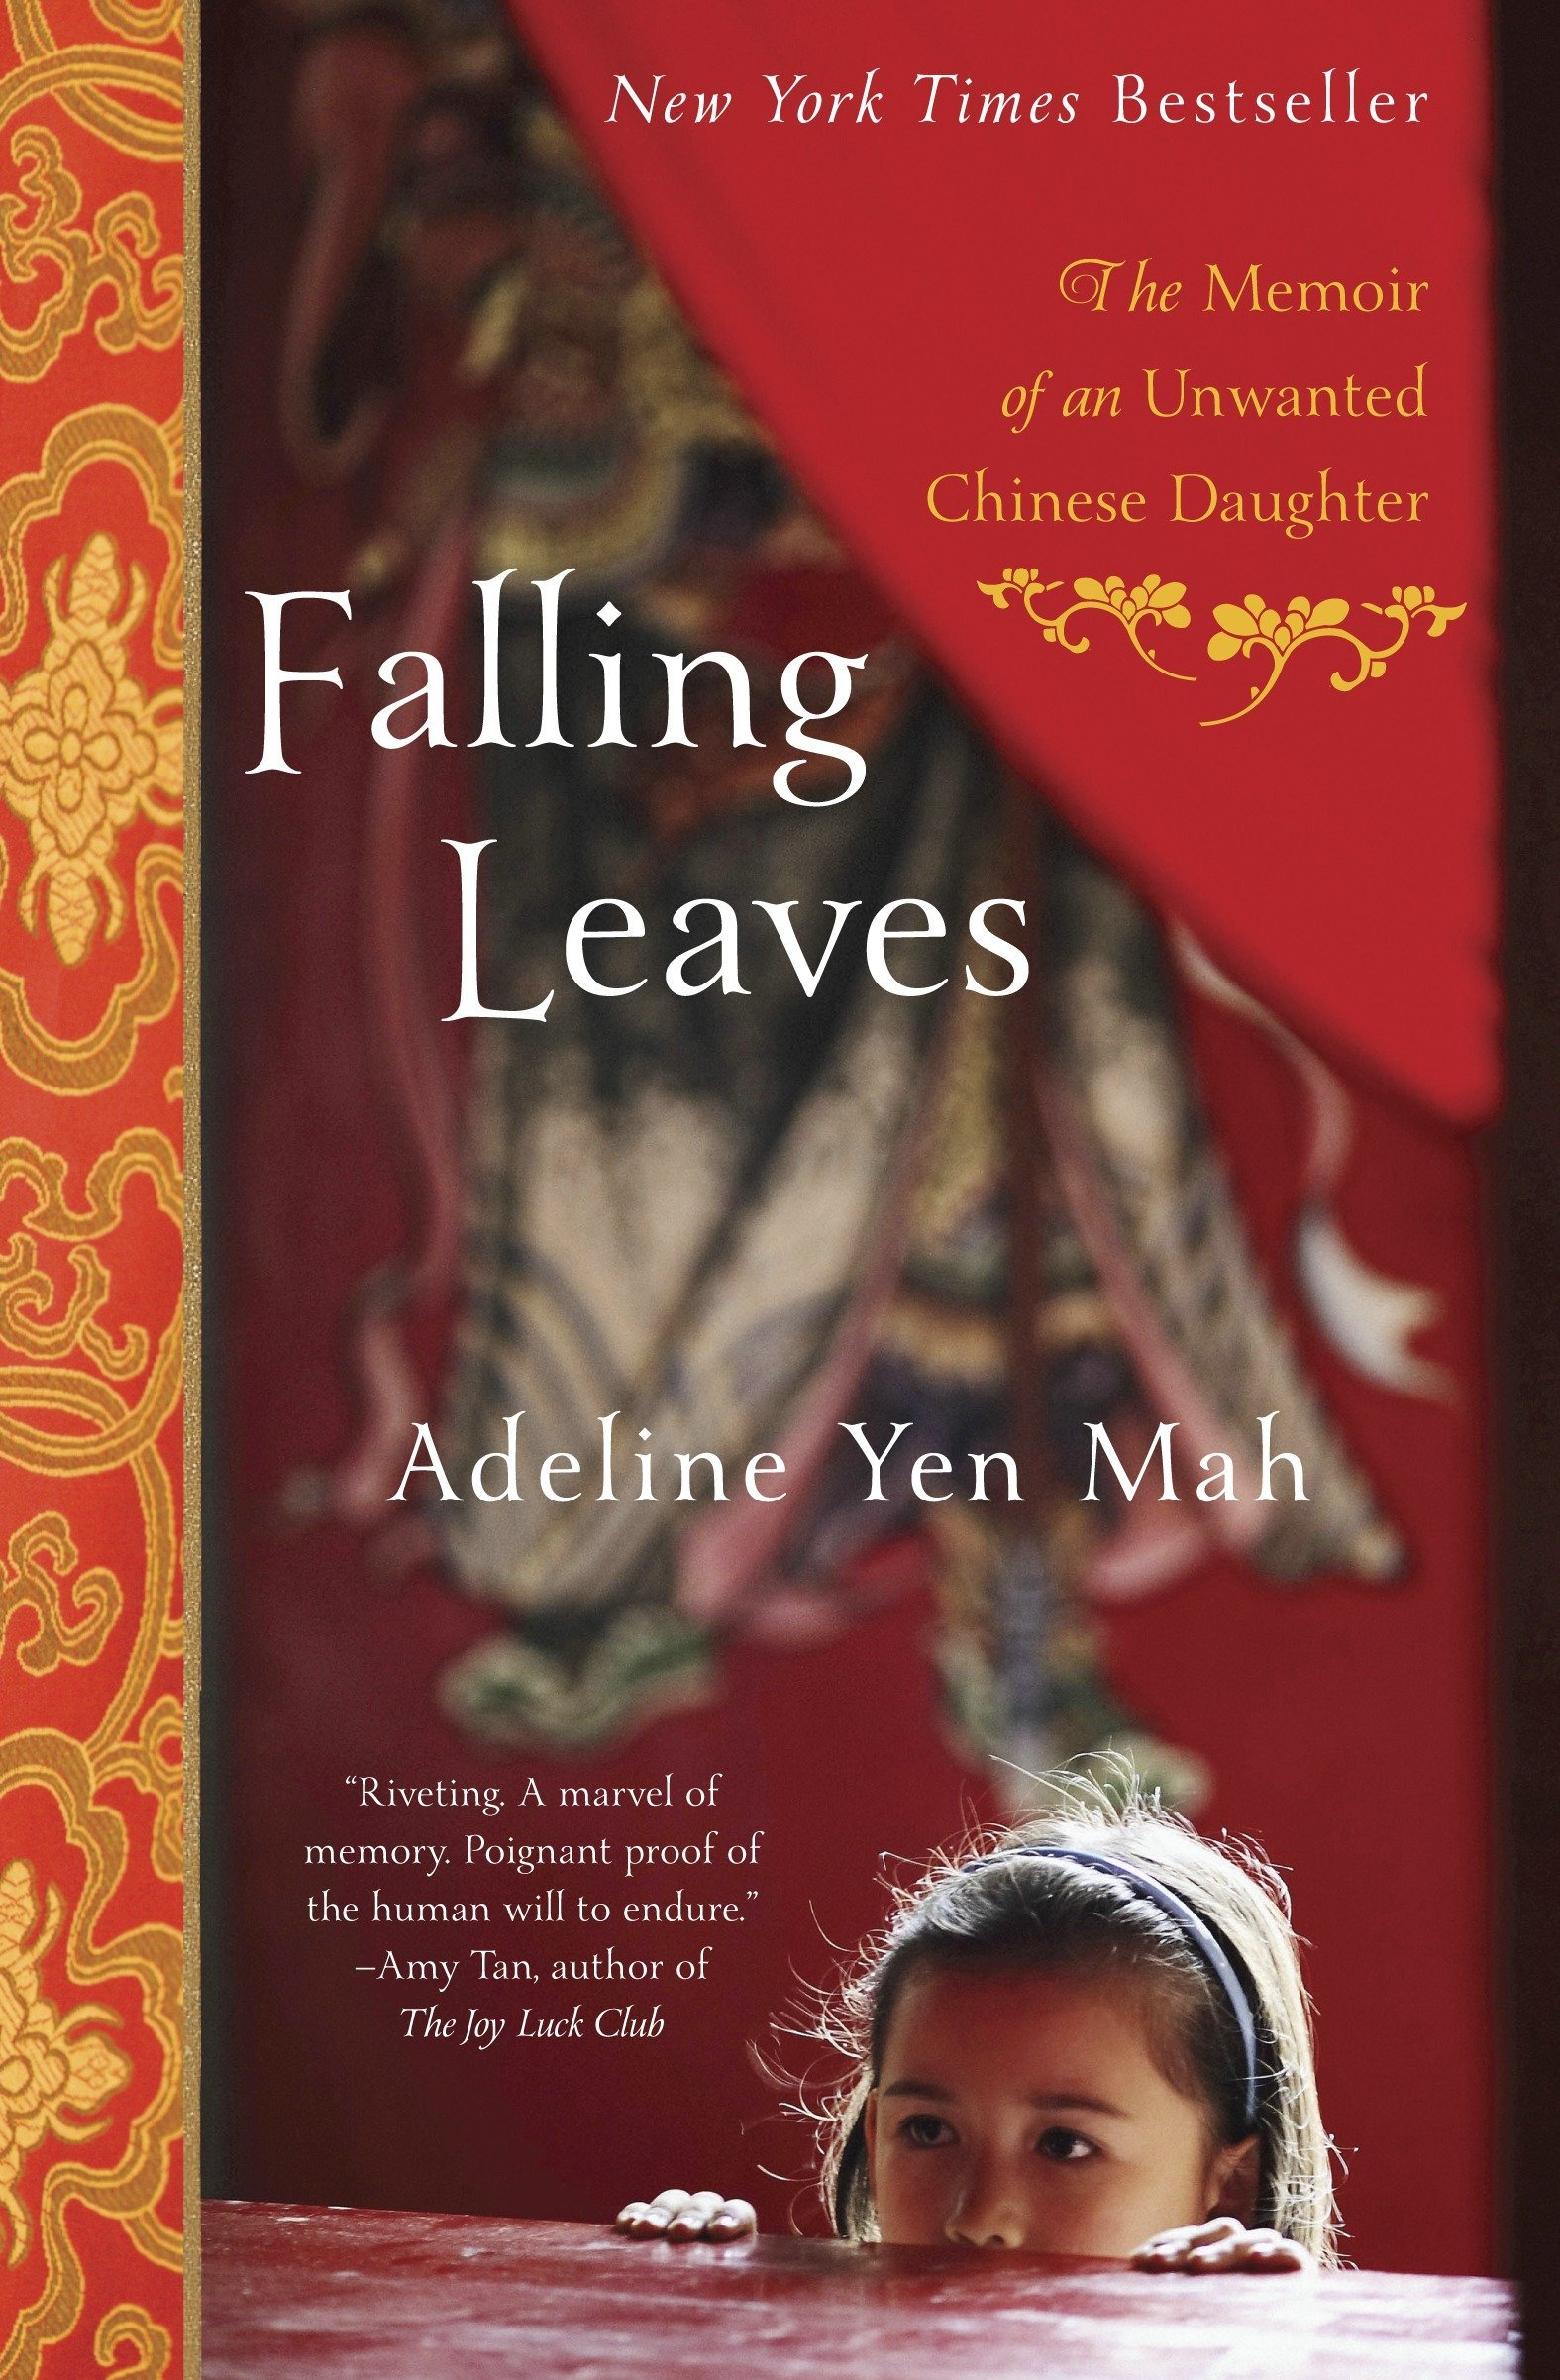 baa809f38c6c Falling Leaves: The Memoir of an Unwanted Chinese Daughter: Adeline ...